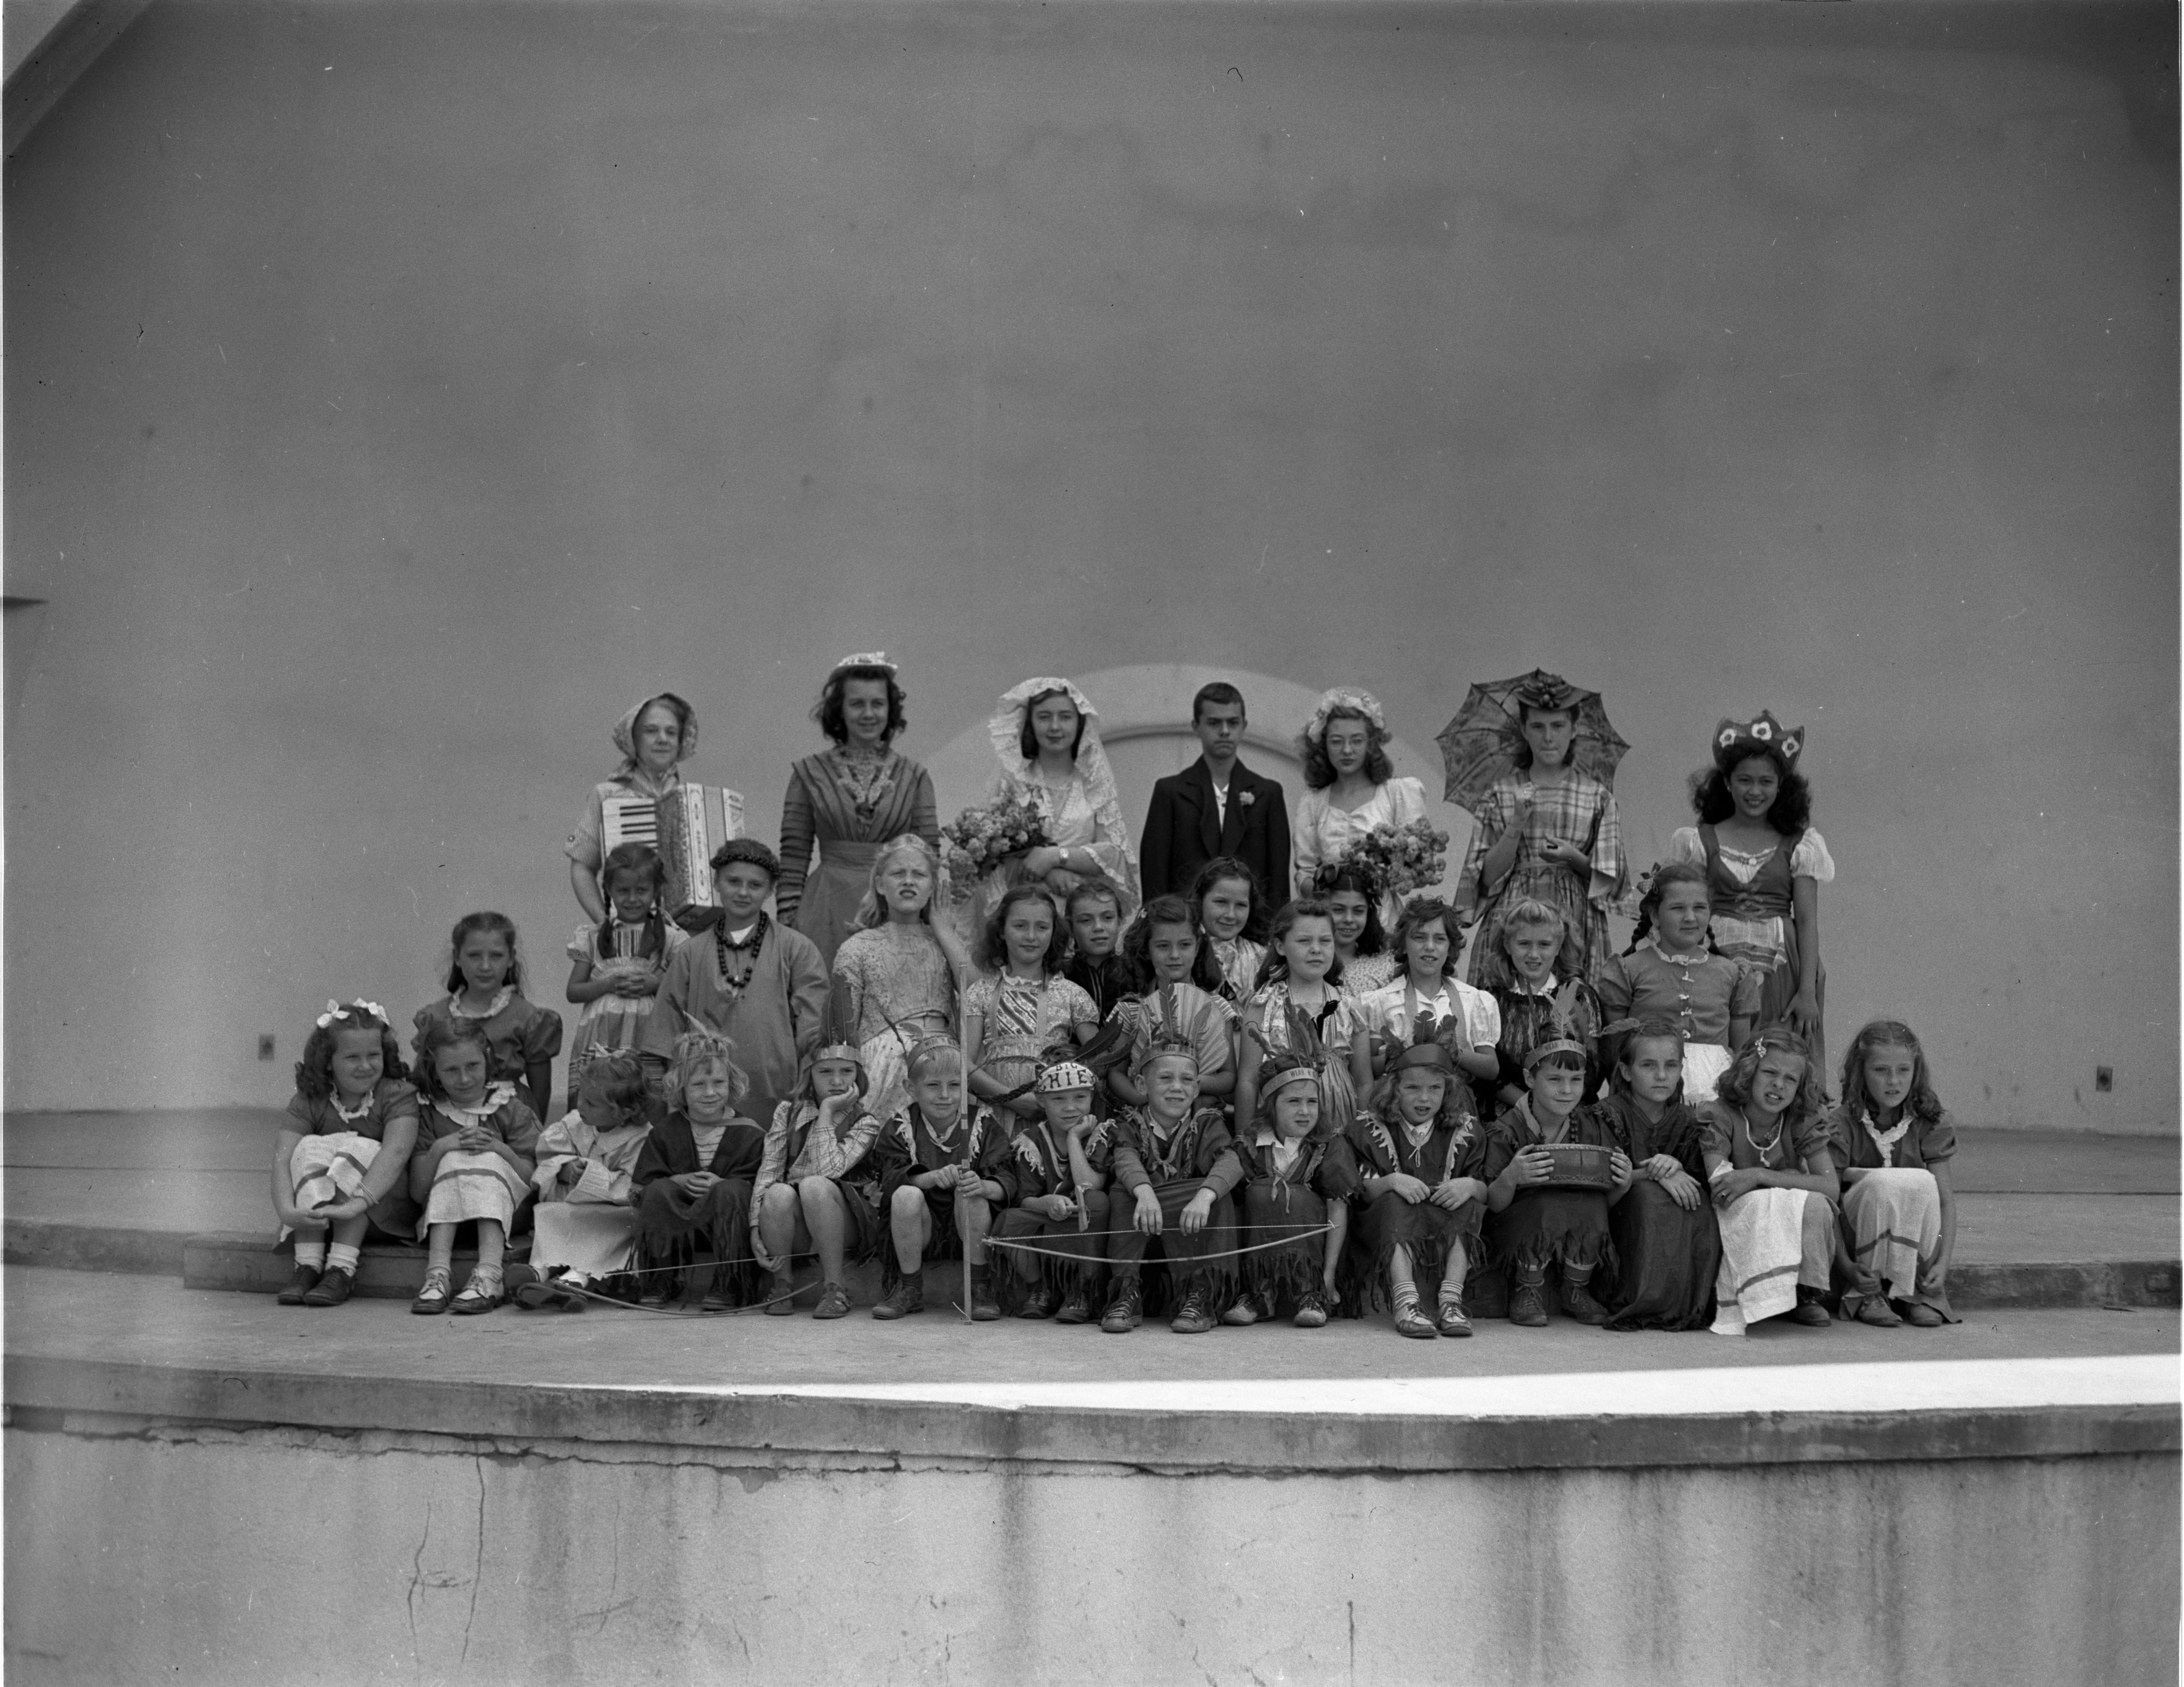 Cast Of Historical Pageant Presented In West Park, July 1947 image